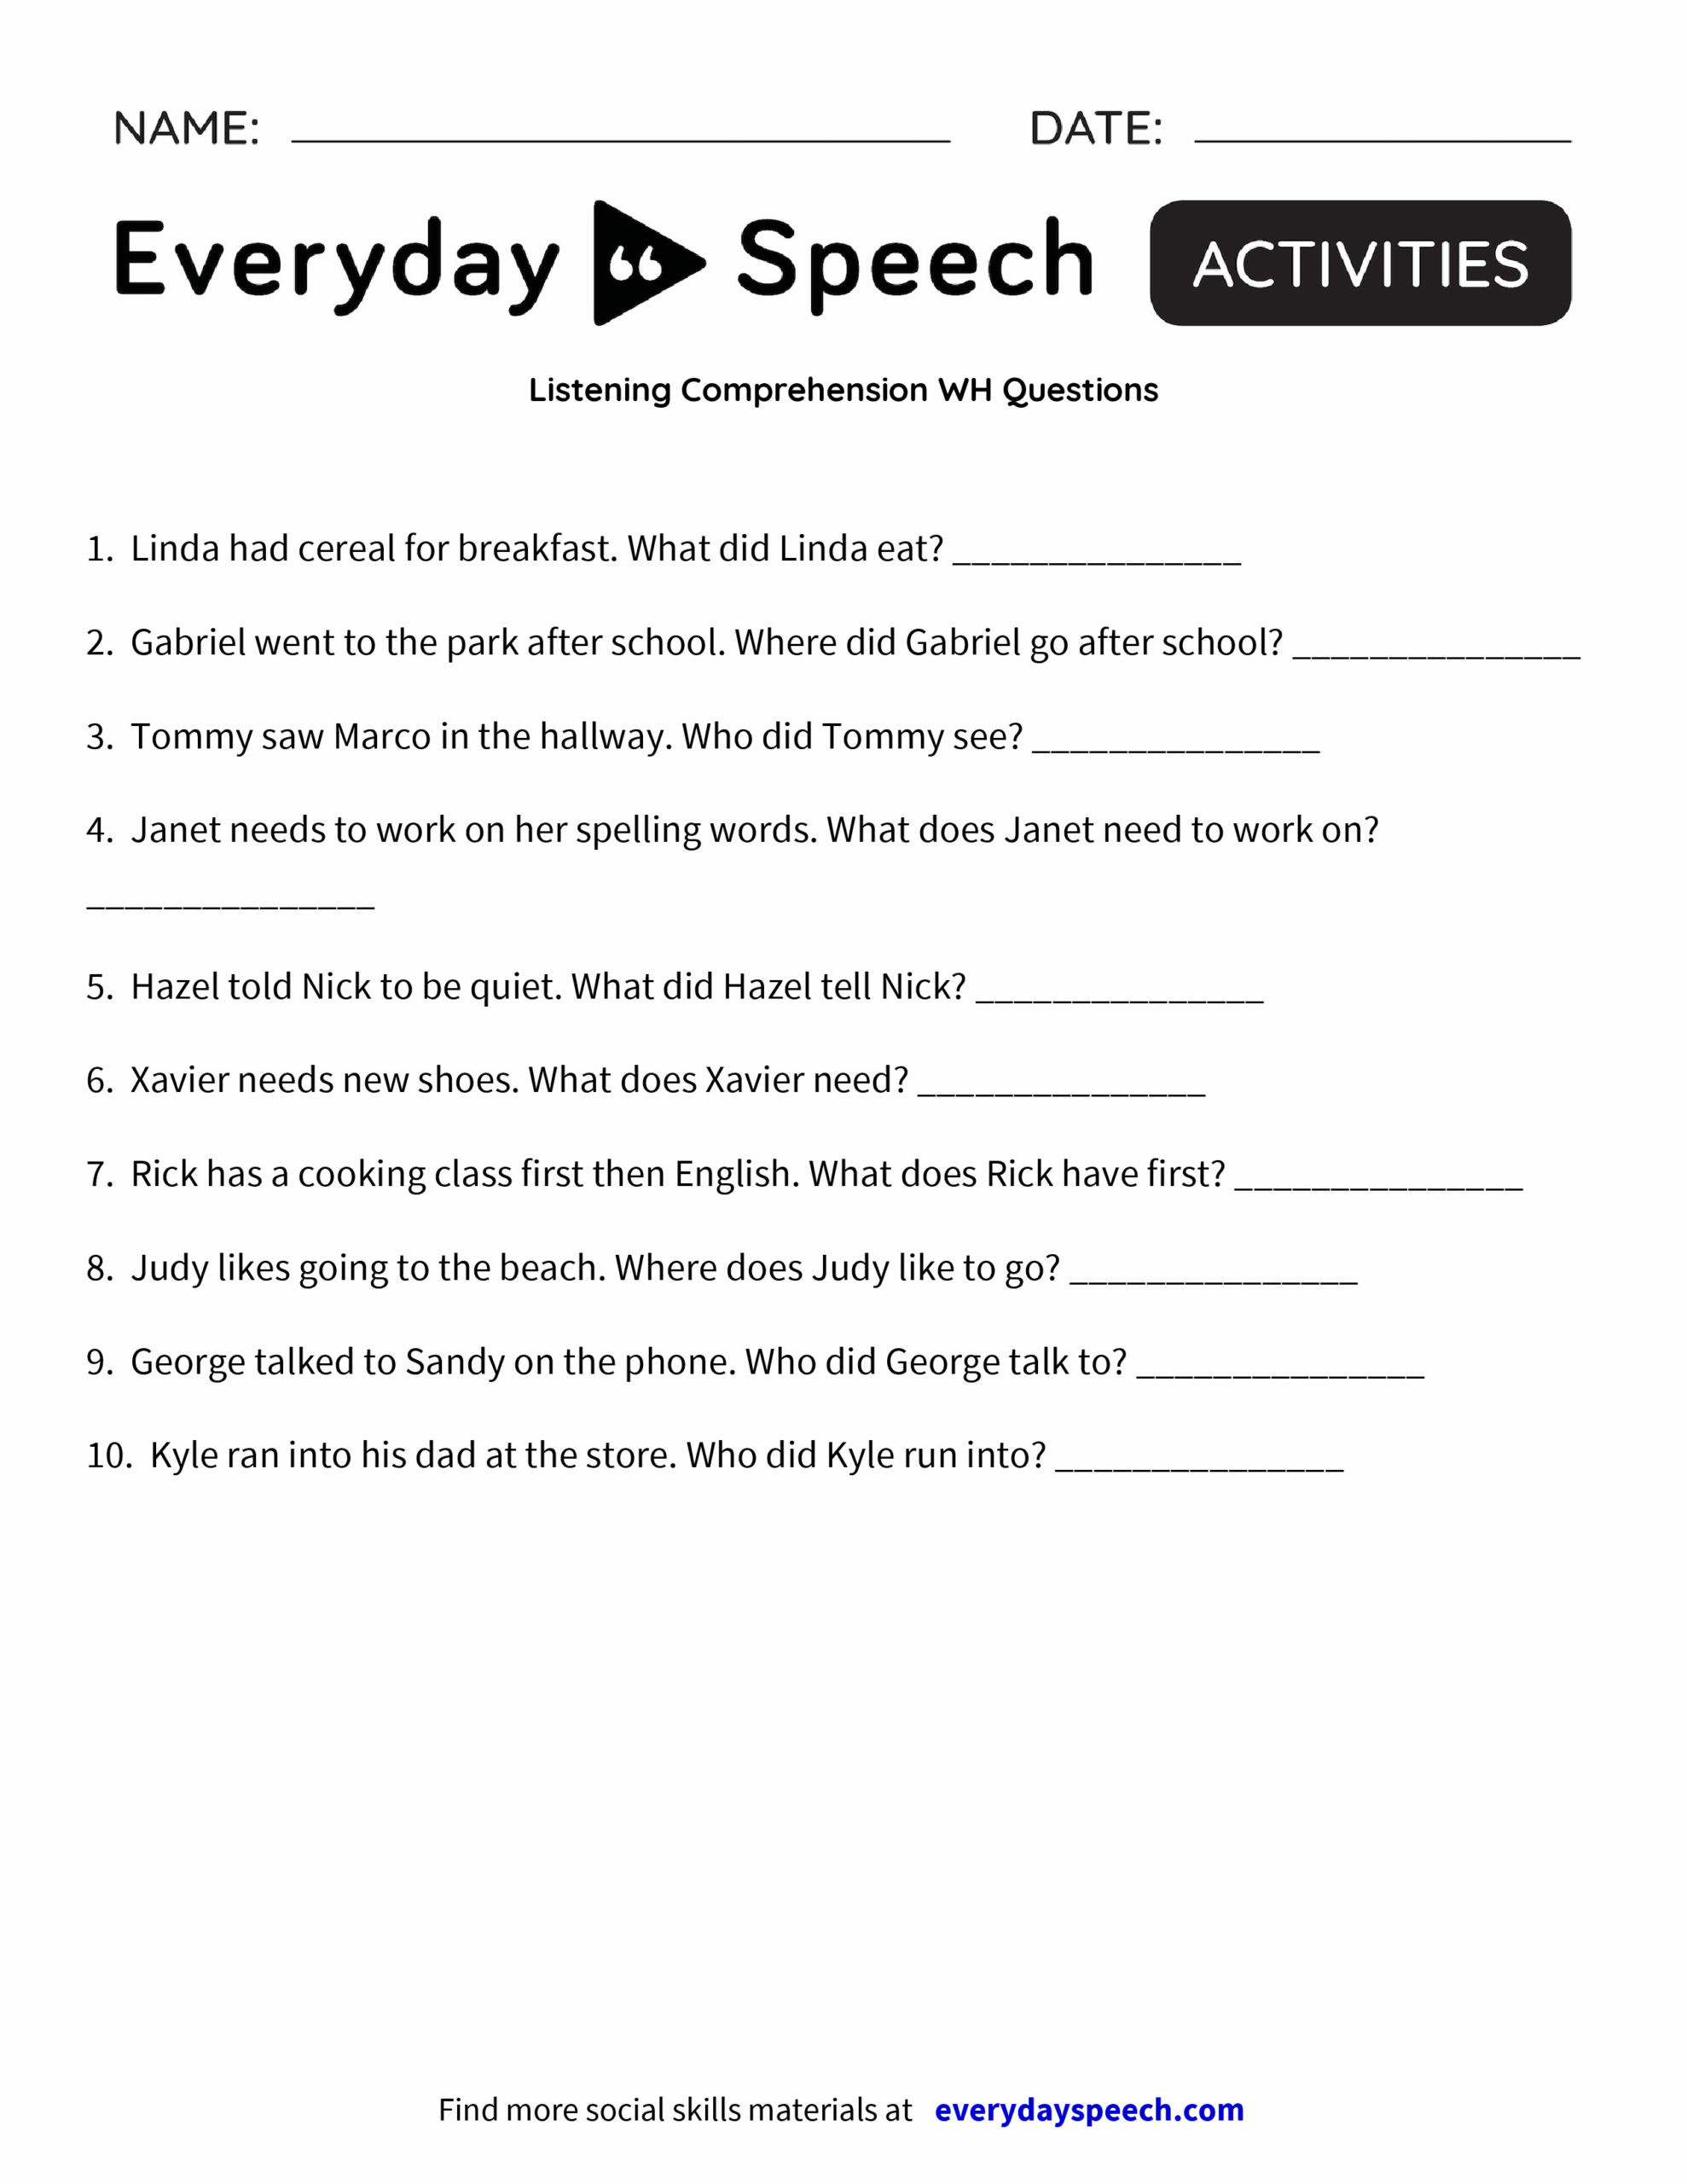 Wh Questions Reading Comprehension Worksheets Math Worksheet 46 Phenomenal Year 1 Reading Prehension